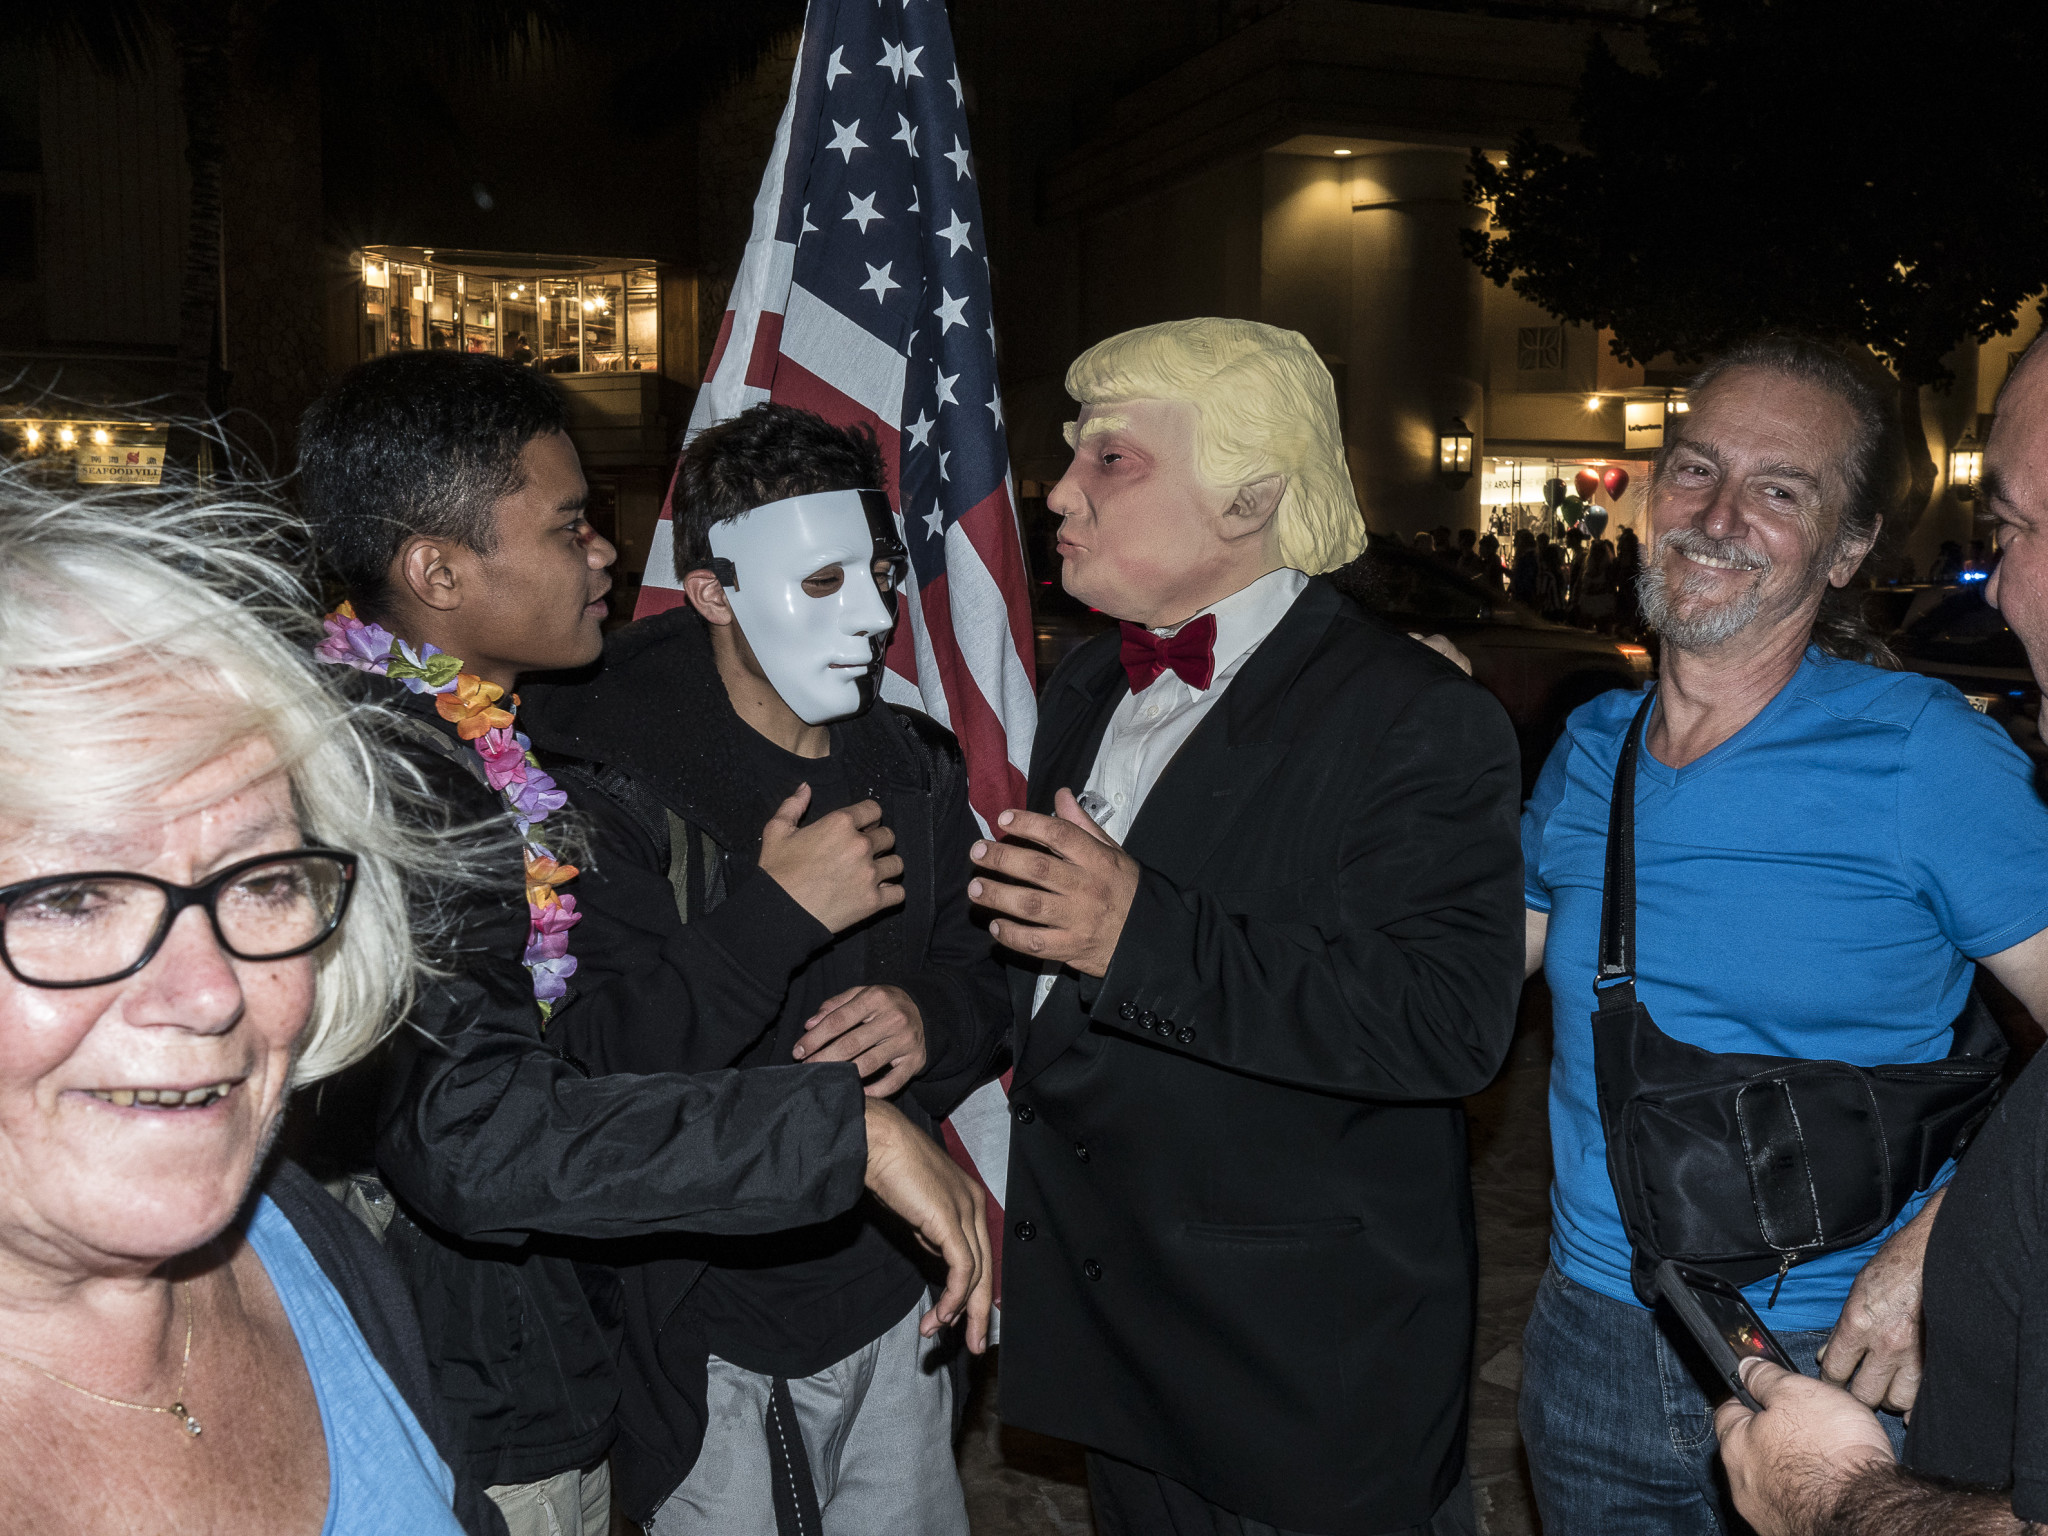 <p>Maybe it was the bow tie. This Donald Trump impersonator drew a lot of flak from passersby, but stayed in character. Note his hand size.</p>